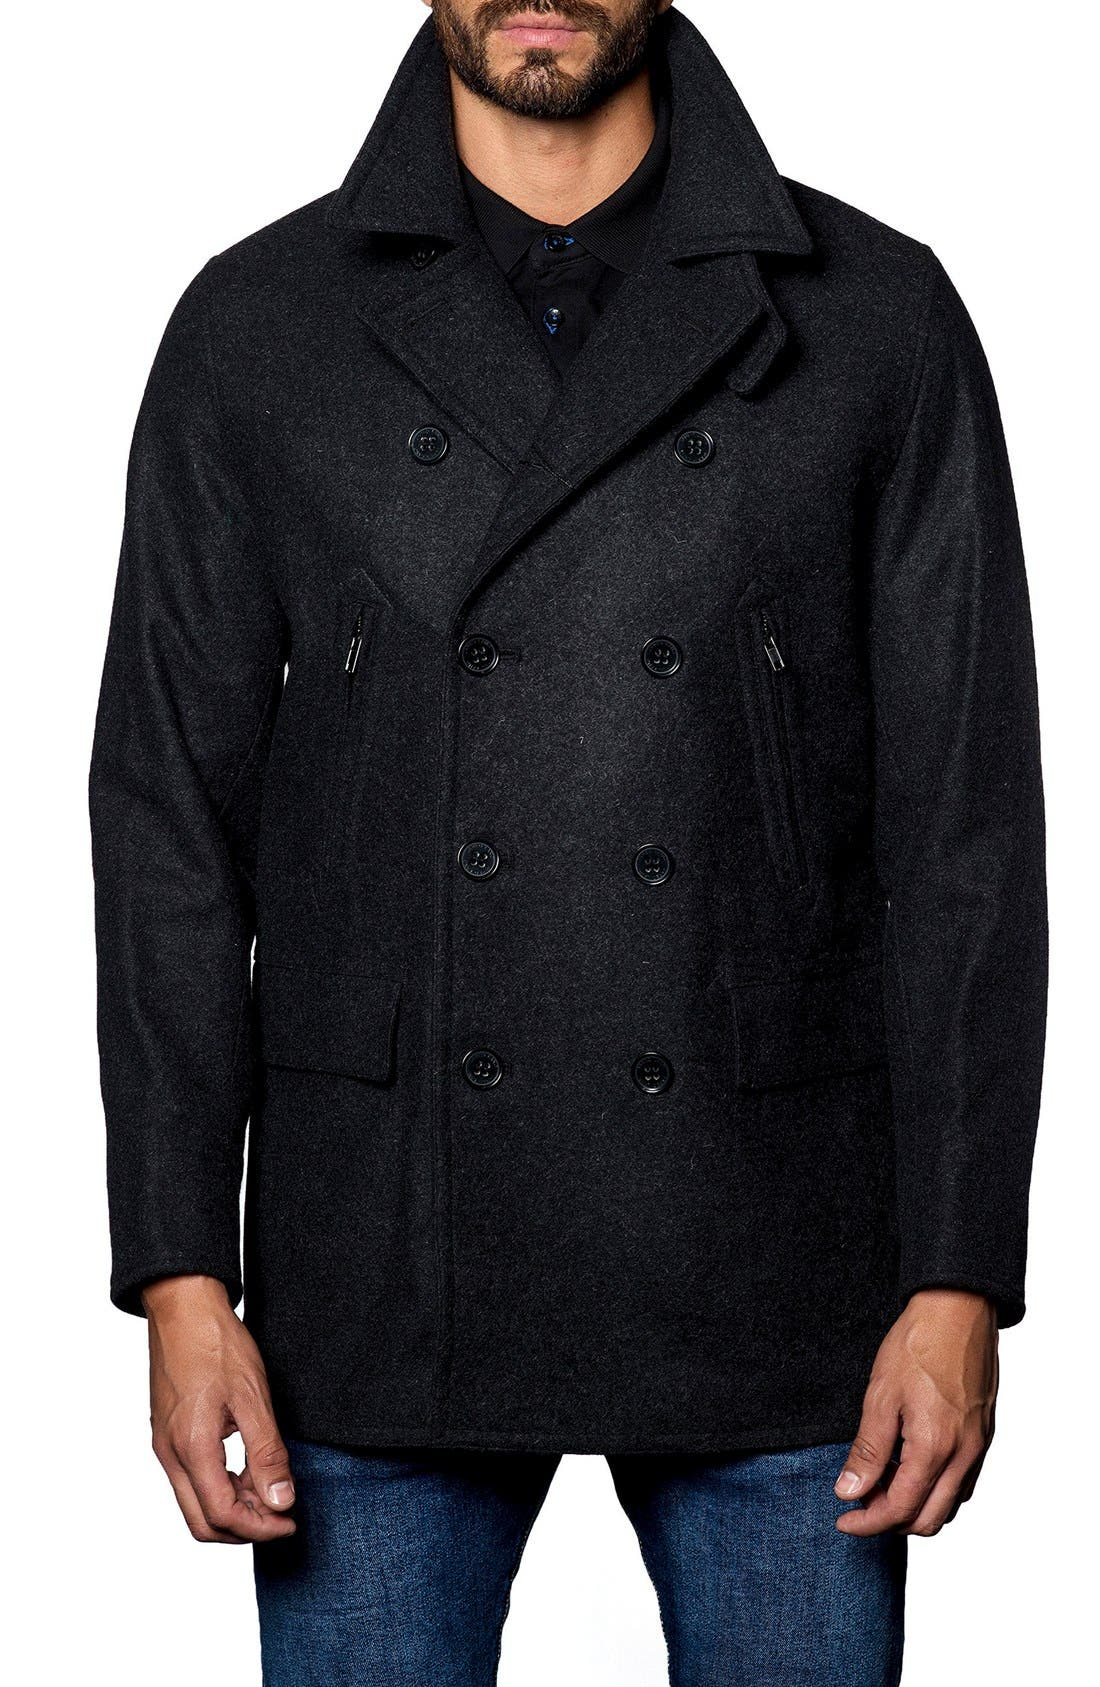 Wool Blend Double Breasted Peacoat,                             Main thumbnail 1, color,                             Charcoal Flat Wool